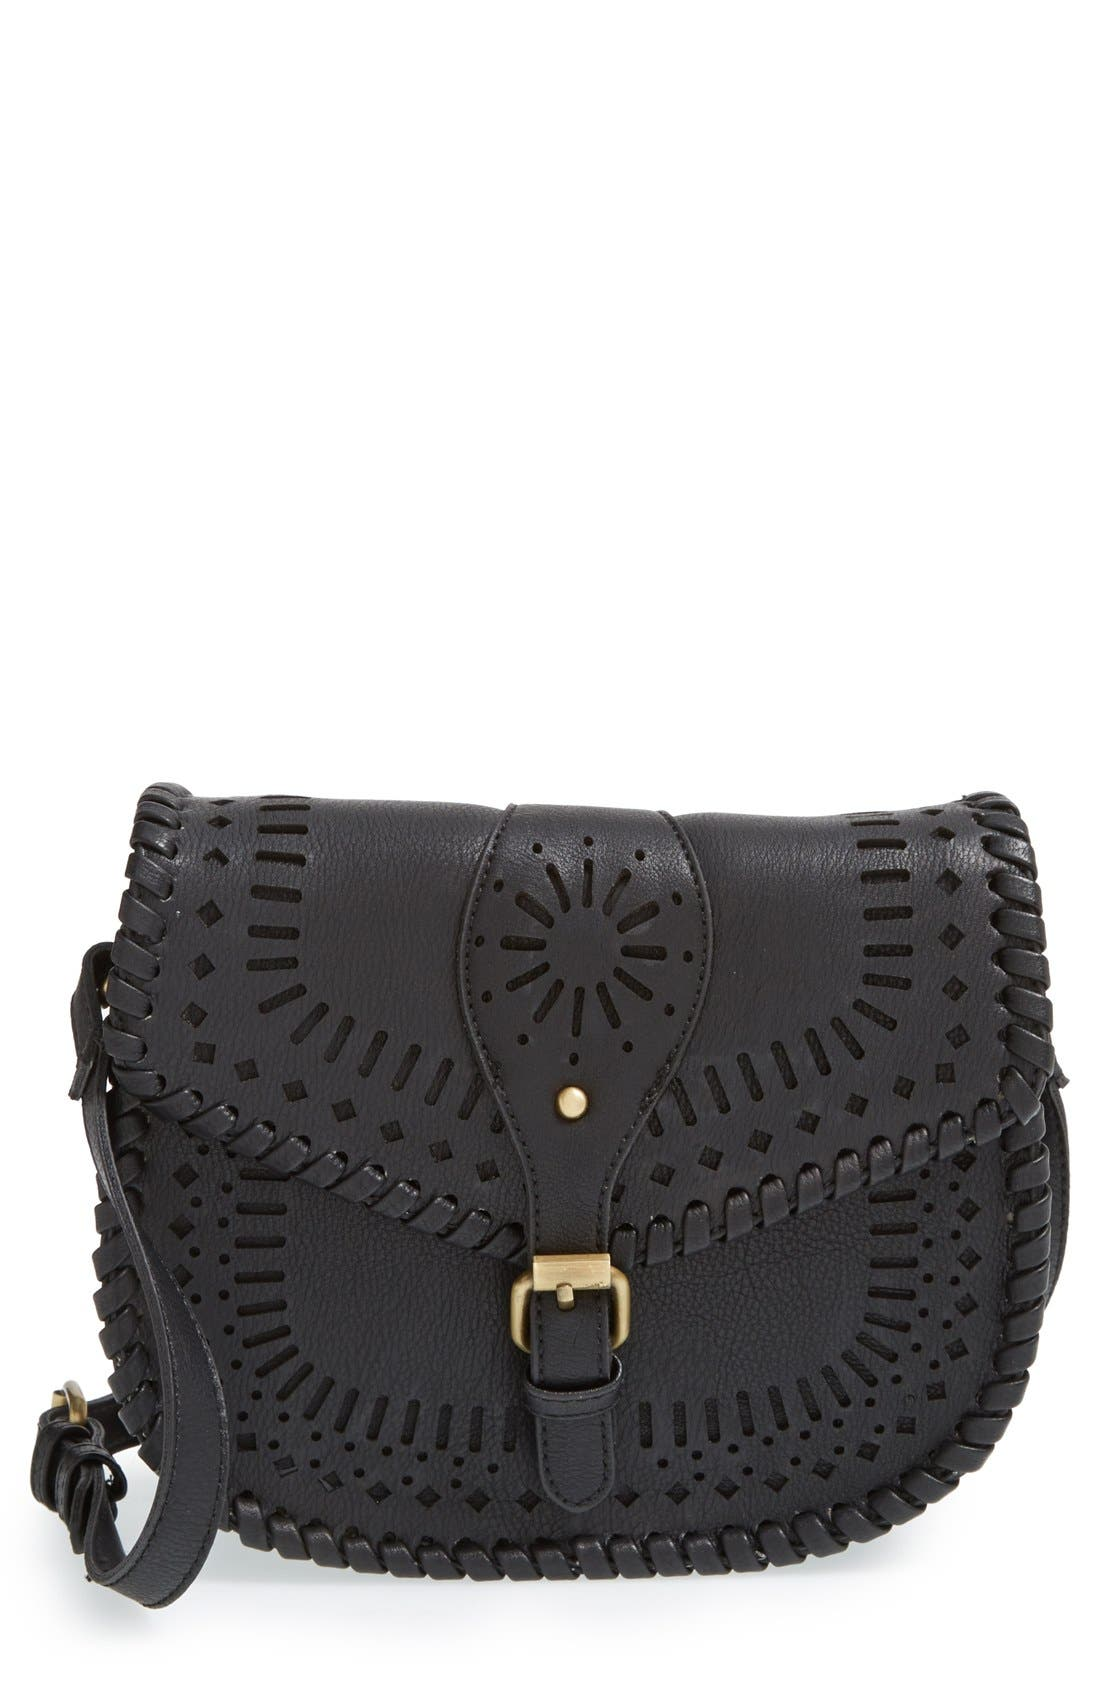 'Kianna' Perforated Faux Leather Crossbody Bag,                             Main thumbnail 1, color,                             001